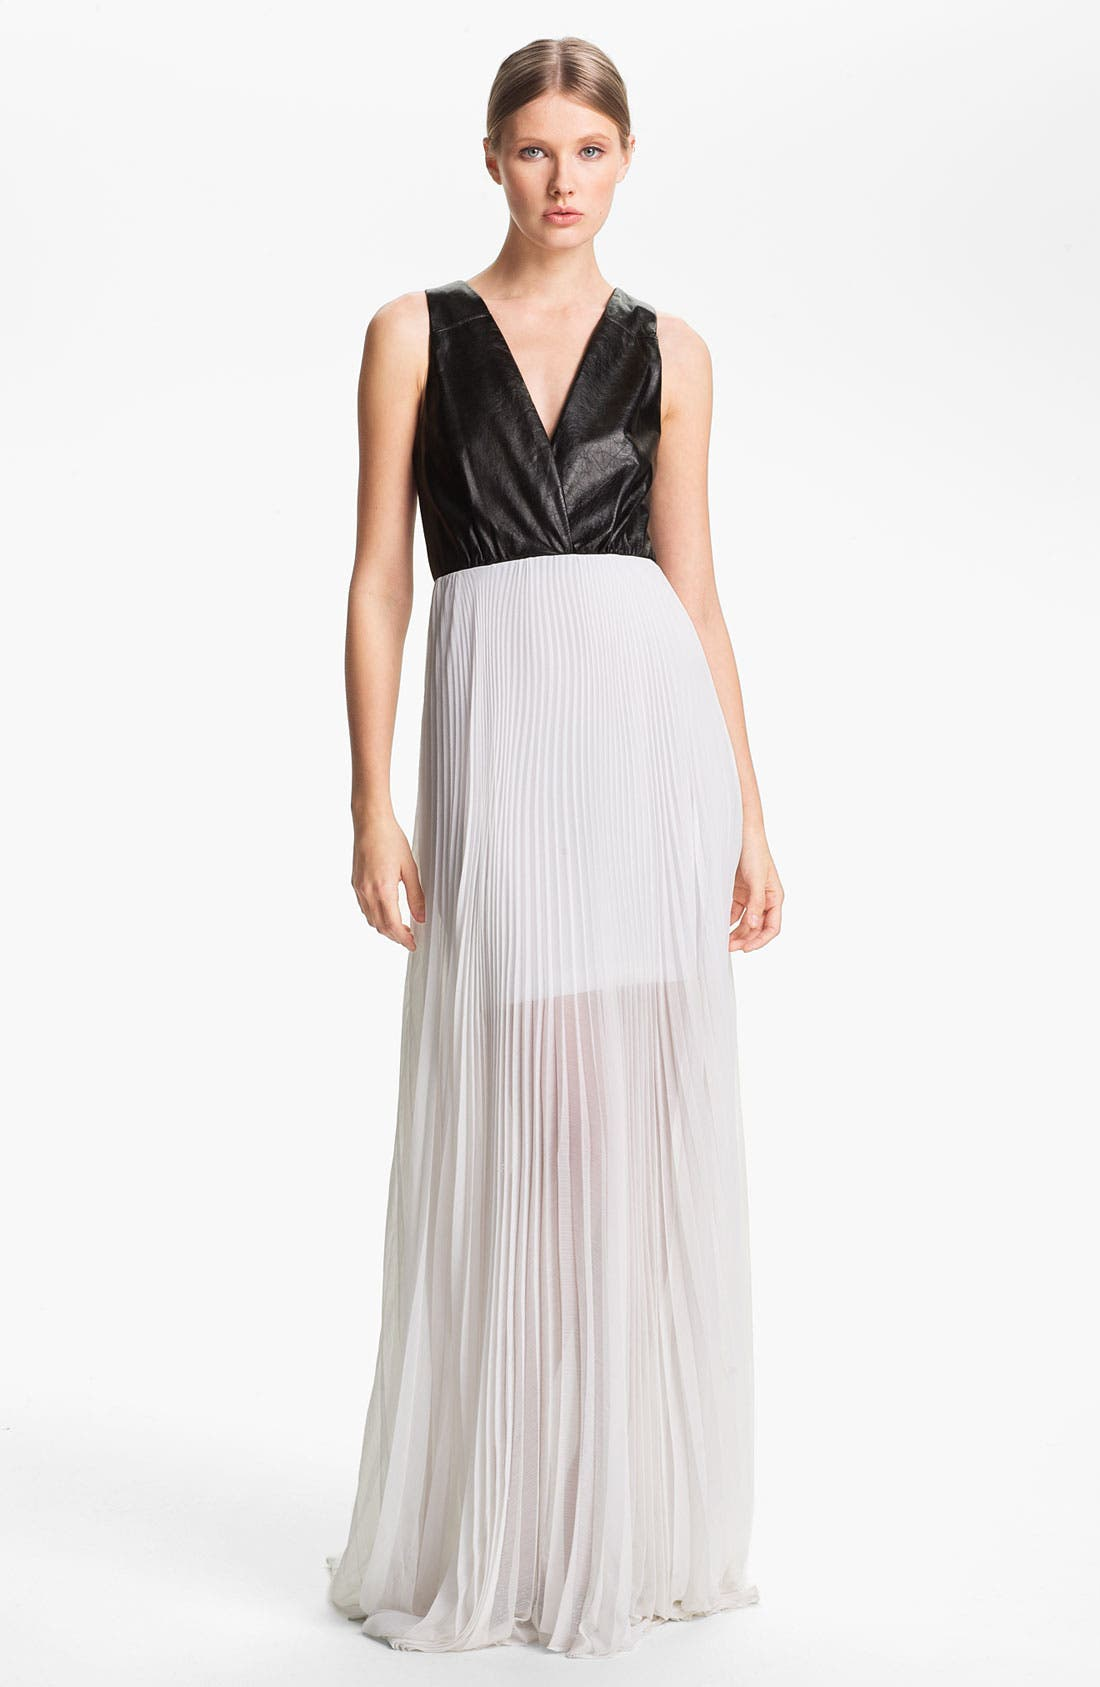 Alternate Image 1 Selected - Alice + Olivia Leather Bodice & Chiffon Dress